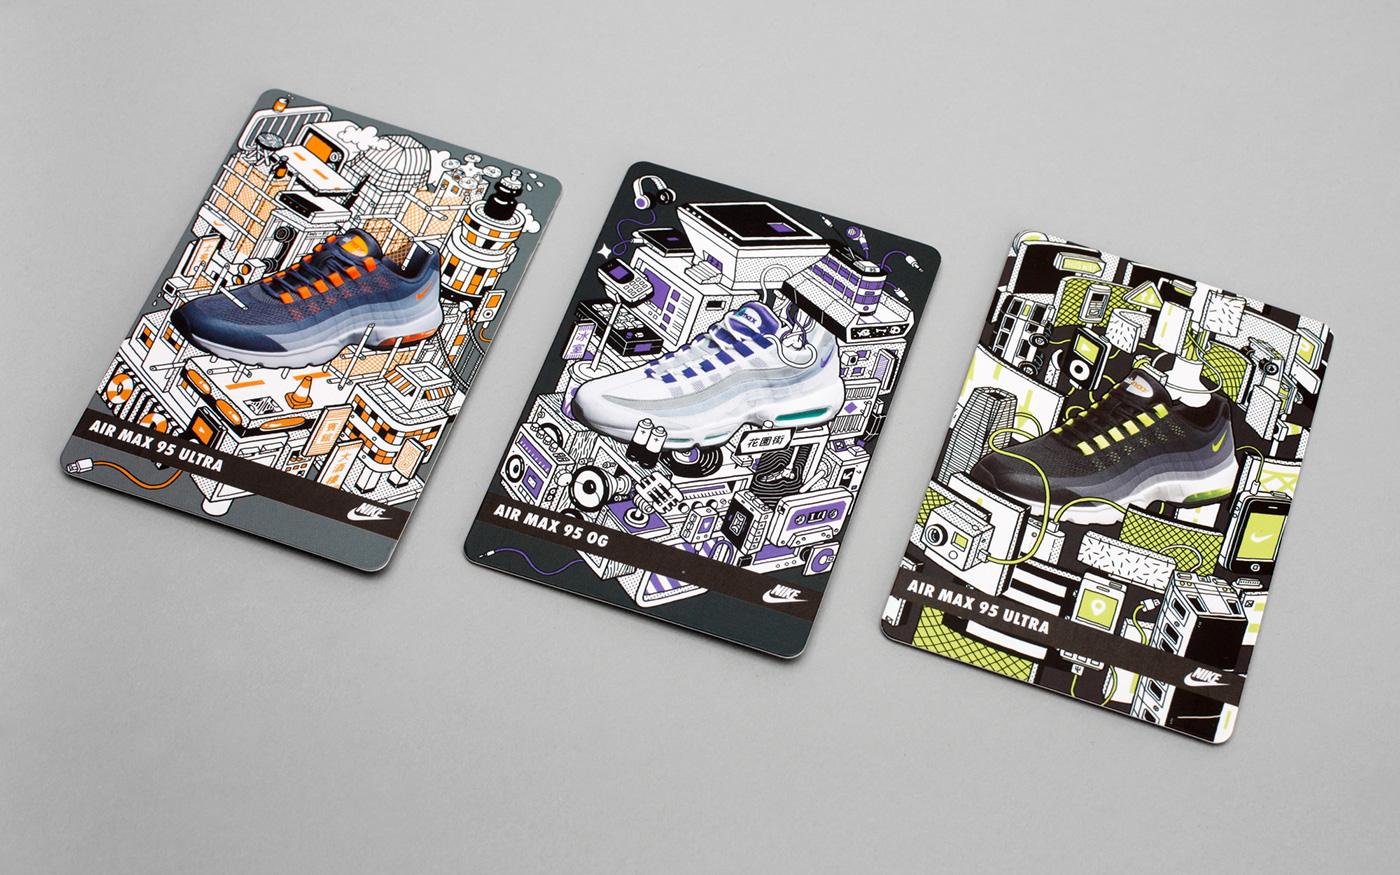 9fff25362d80d7 NIKE AIR MAX 95 COLLECTABLE CARDS on Behance